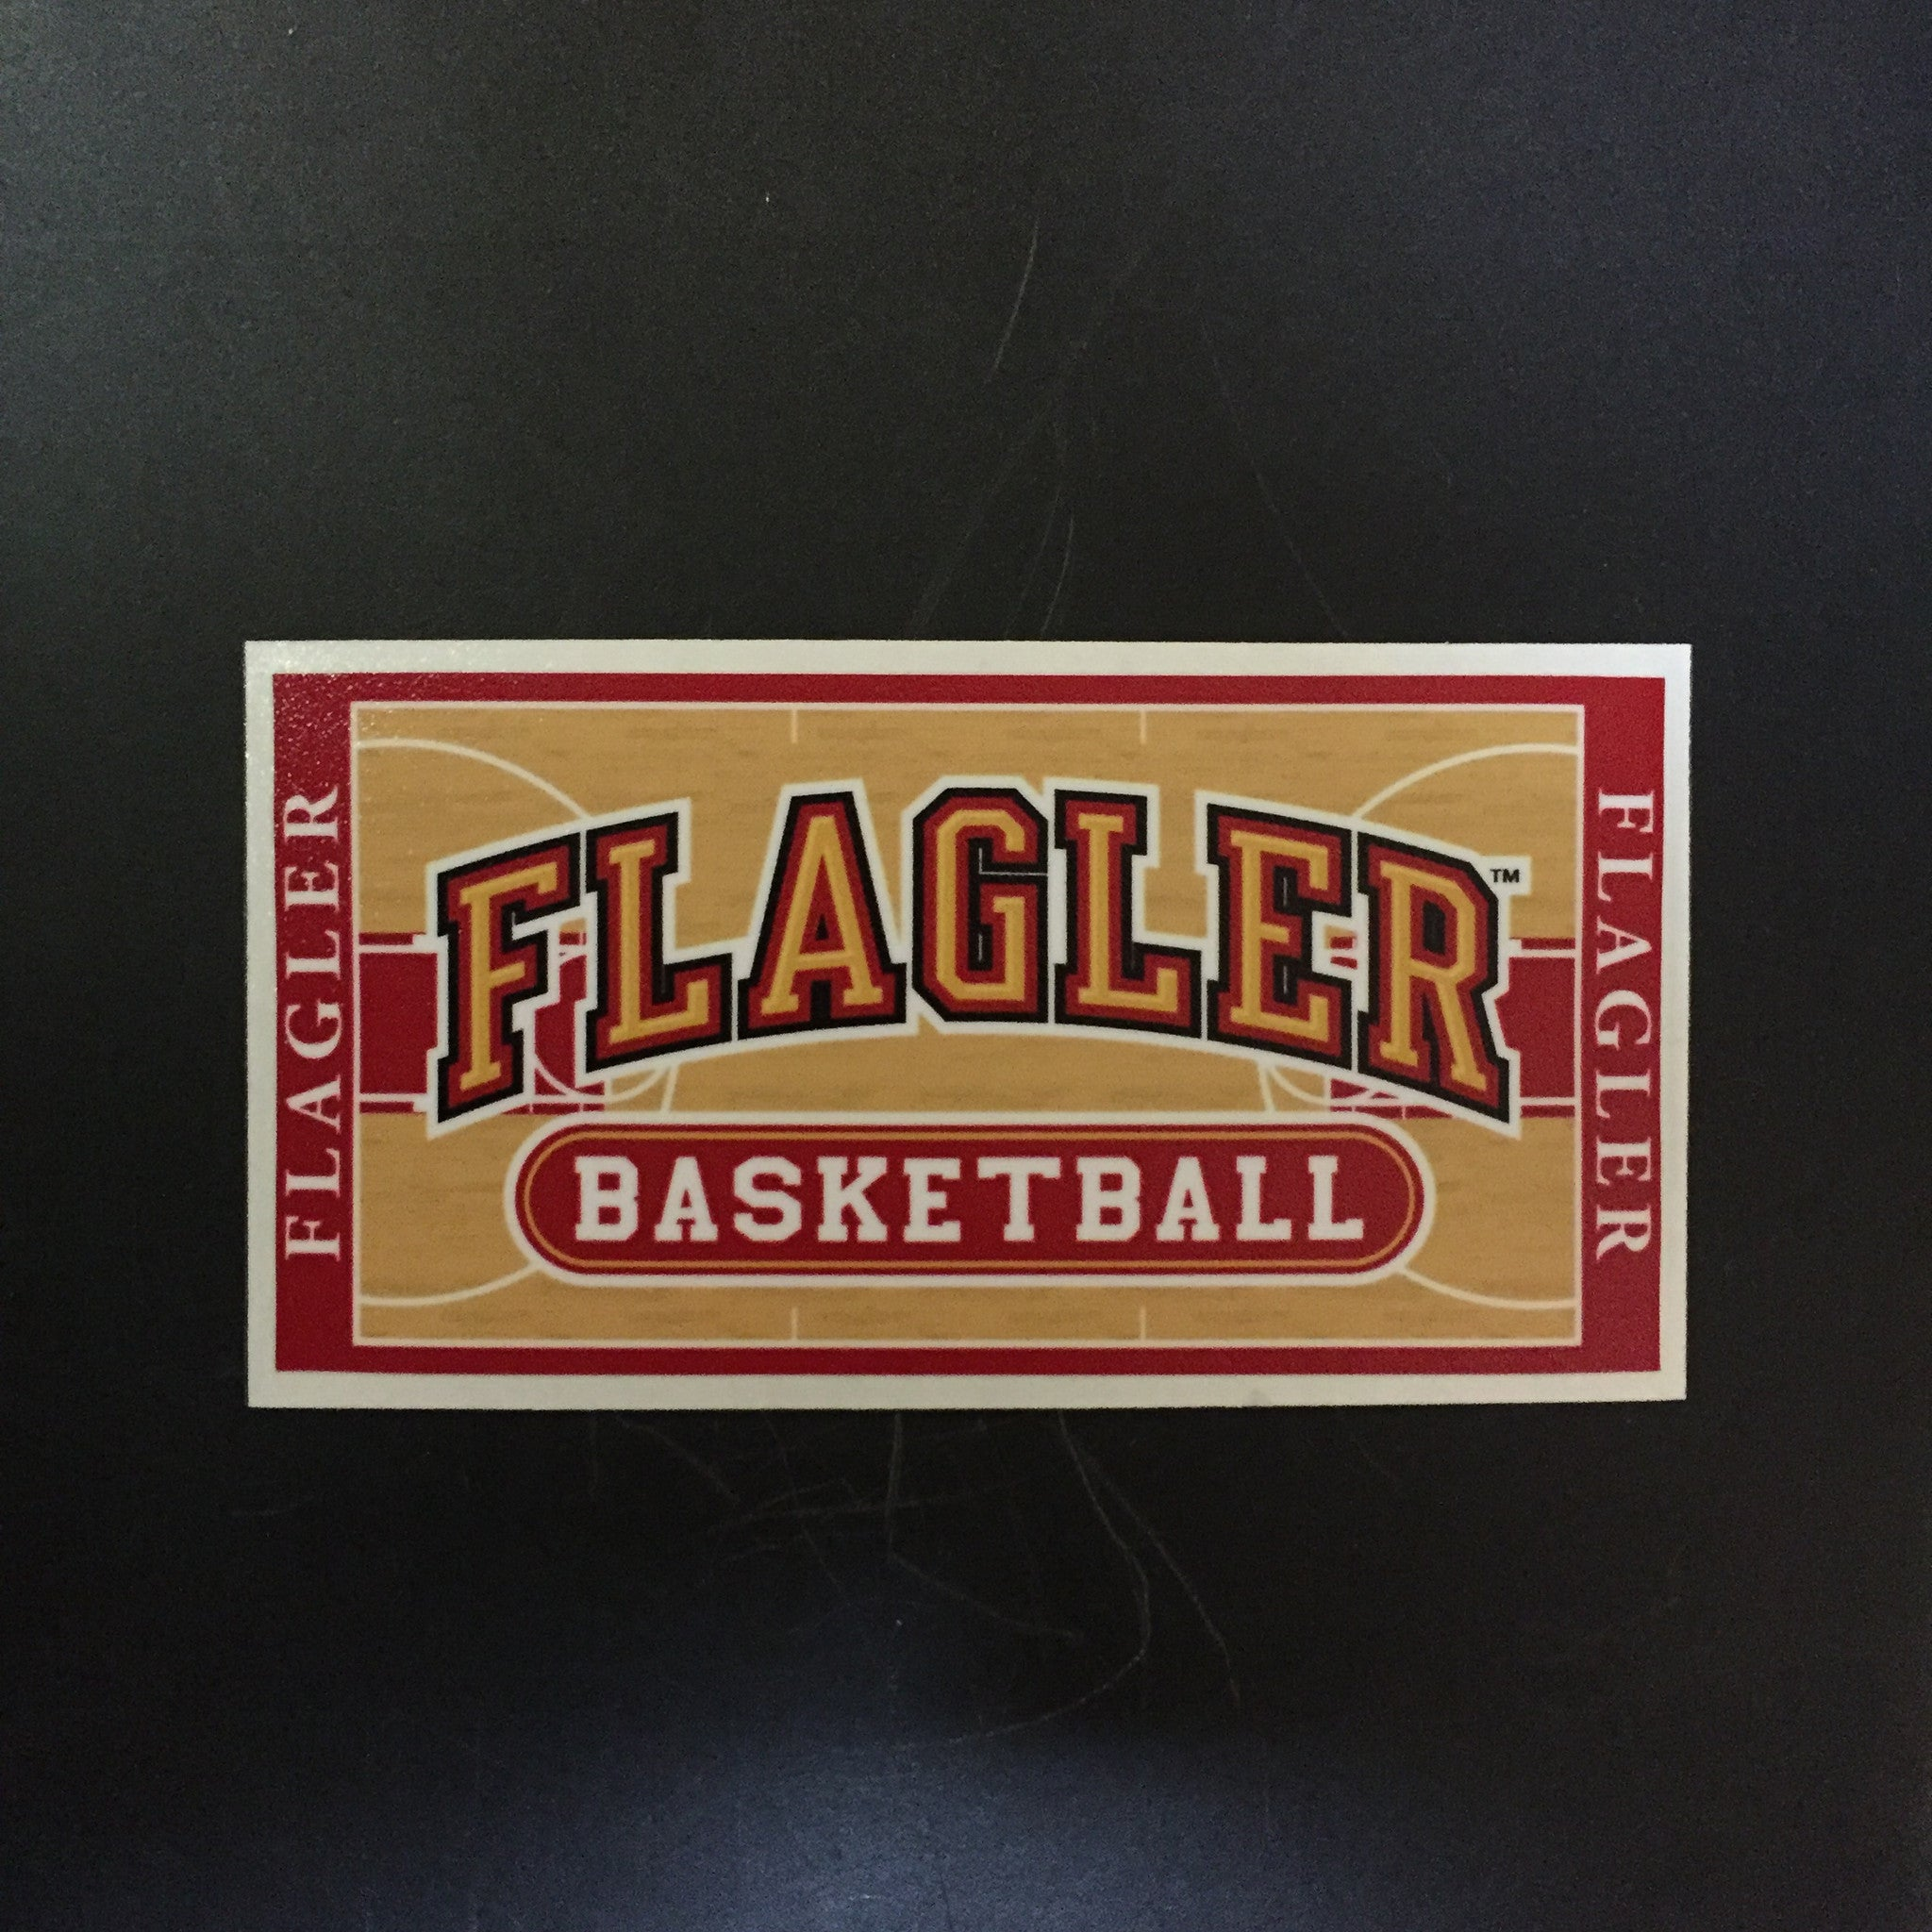 basketball court decal with Flagler written in gold and basketball written in white in red oval